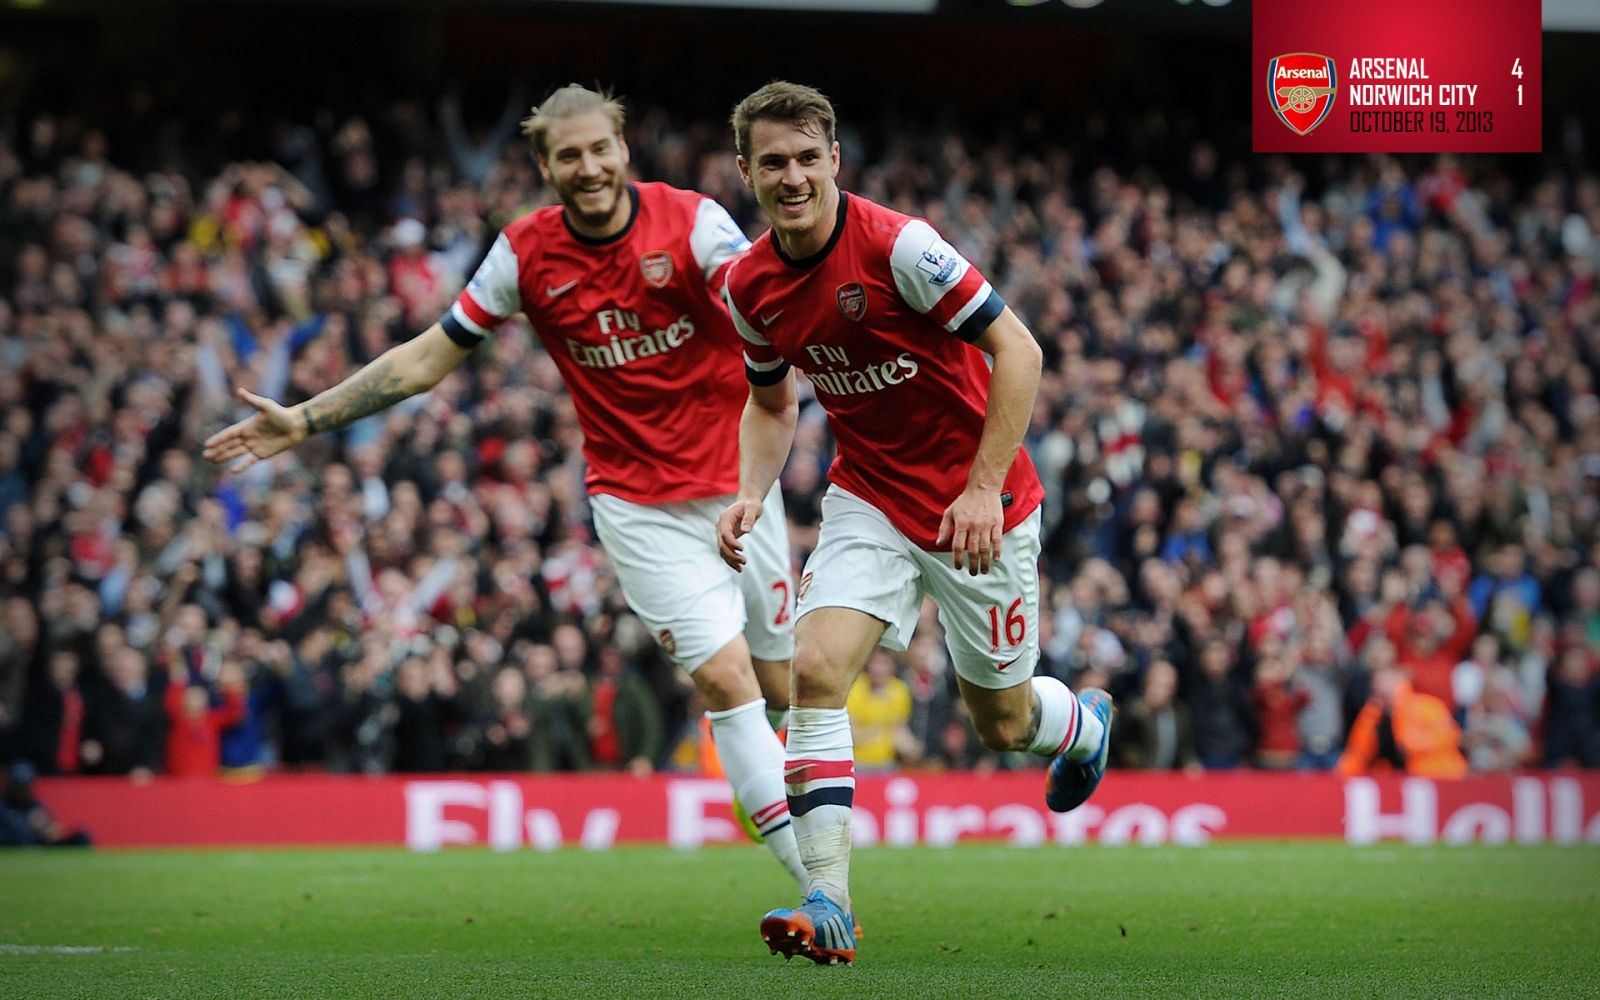 October 19, 2013 - Arsenal 4-1 Norwich